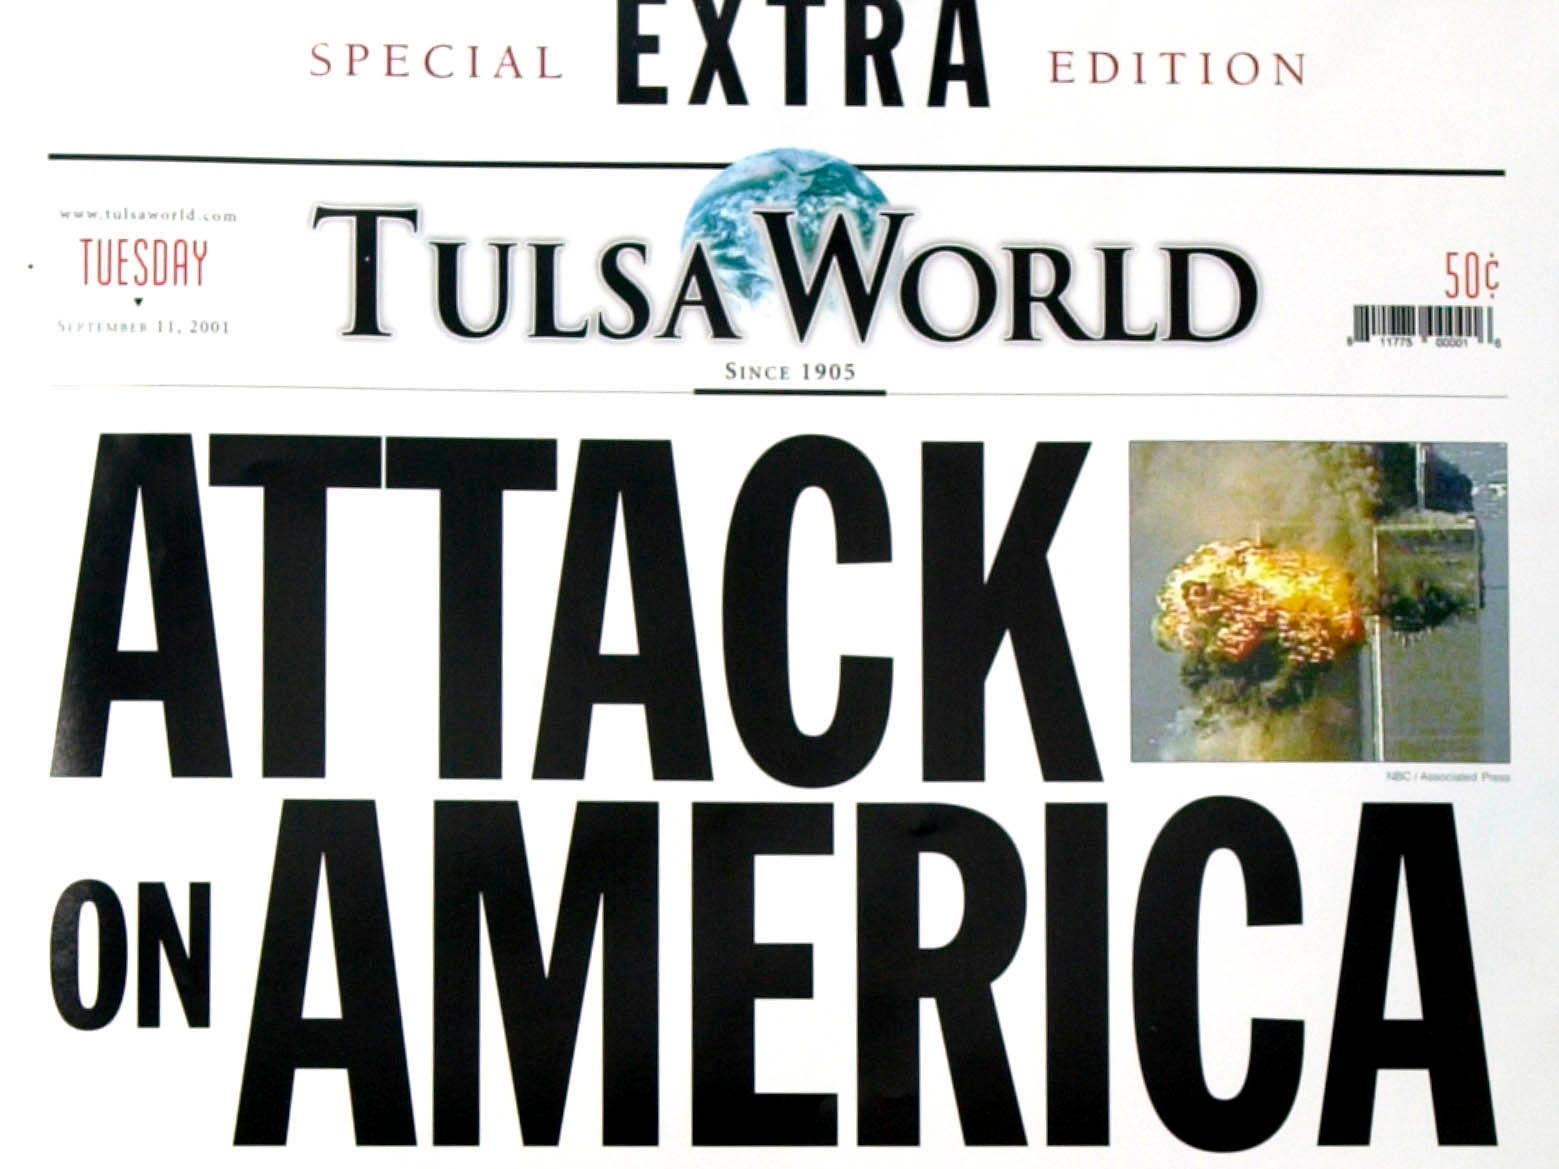 The Tulsa World special extra edition on the terrorist attacks in New York and Washington, its first special edition since World War II, is shown Tuesday, Sept. 11, 2001, in Tulsa, Okla. (AP Photo/Tulsa World, Tom Gilbert)